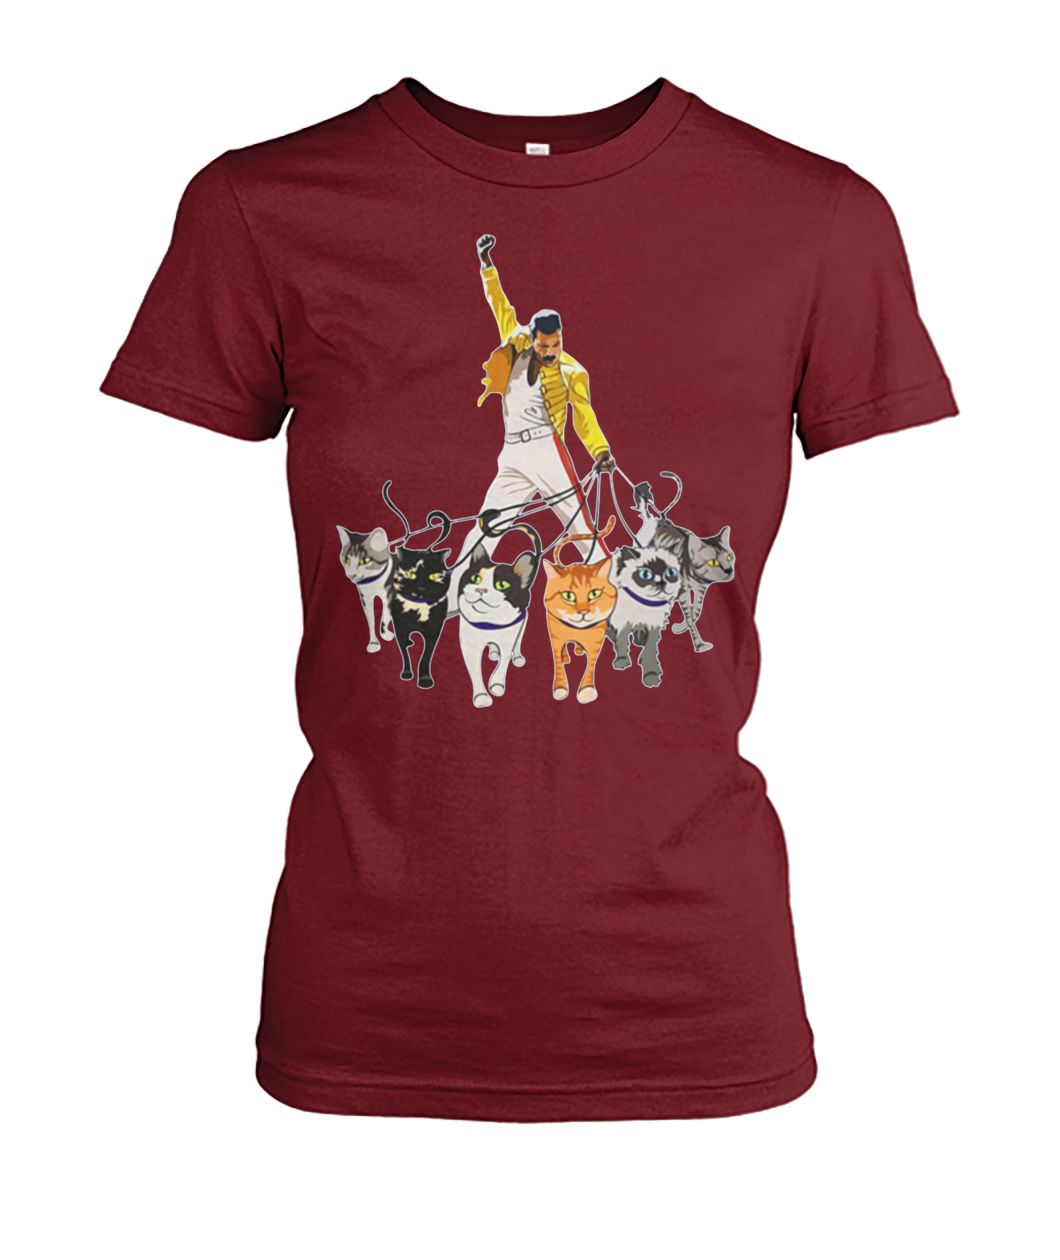 Freddie mercury and cats women's crew tee